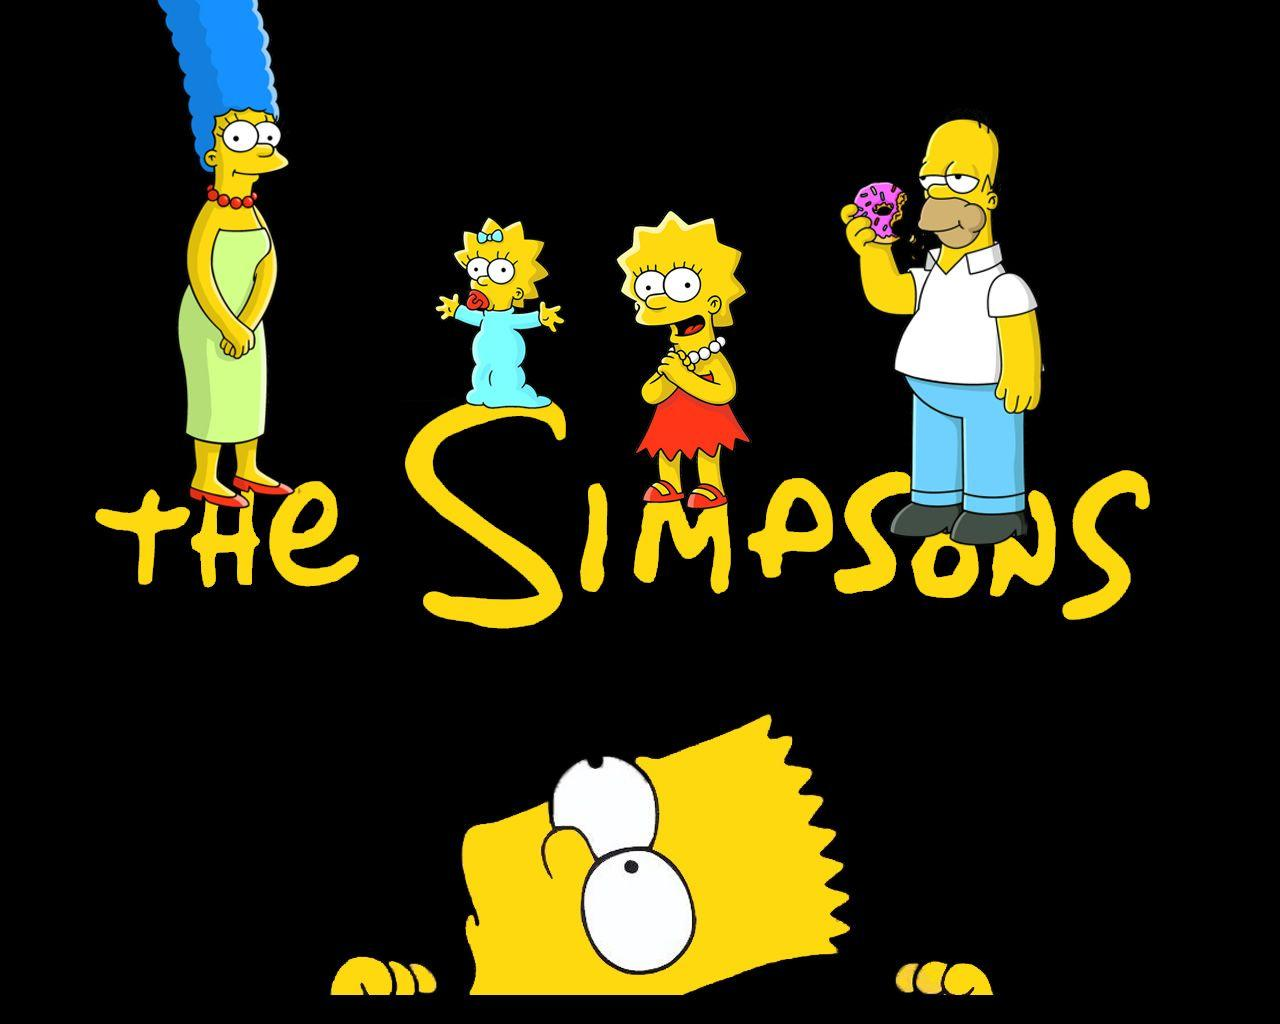 The Simpsons Wallpaper for iPad Air 2 - Cartoons Wallpapers